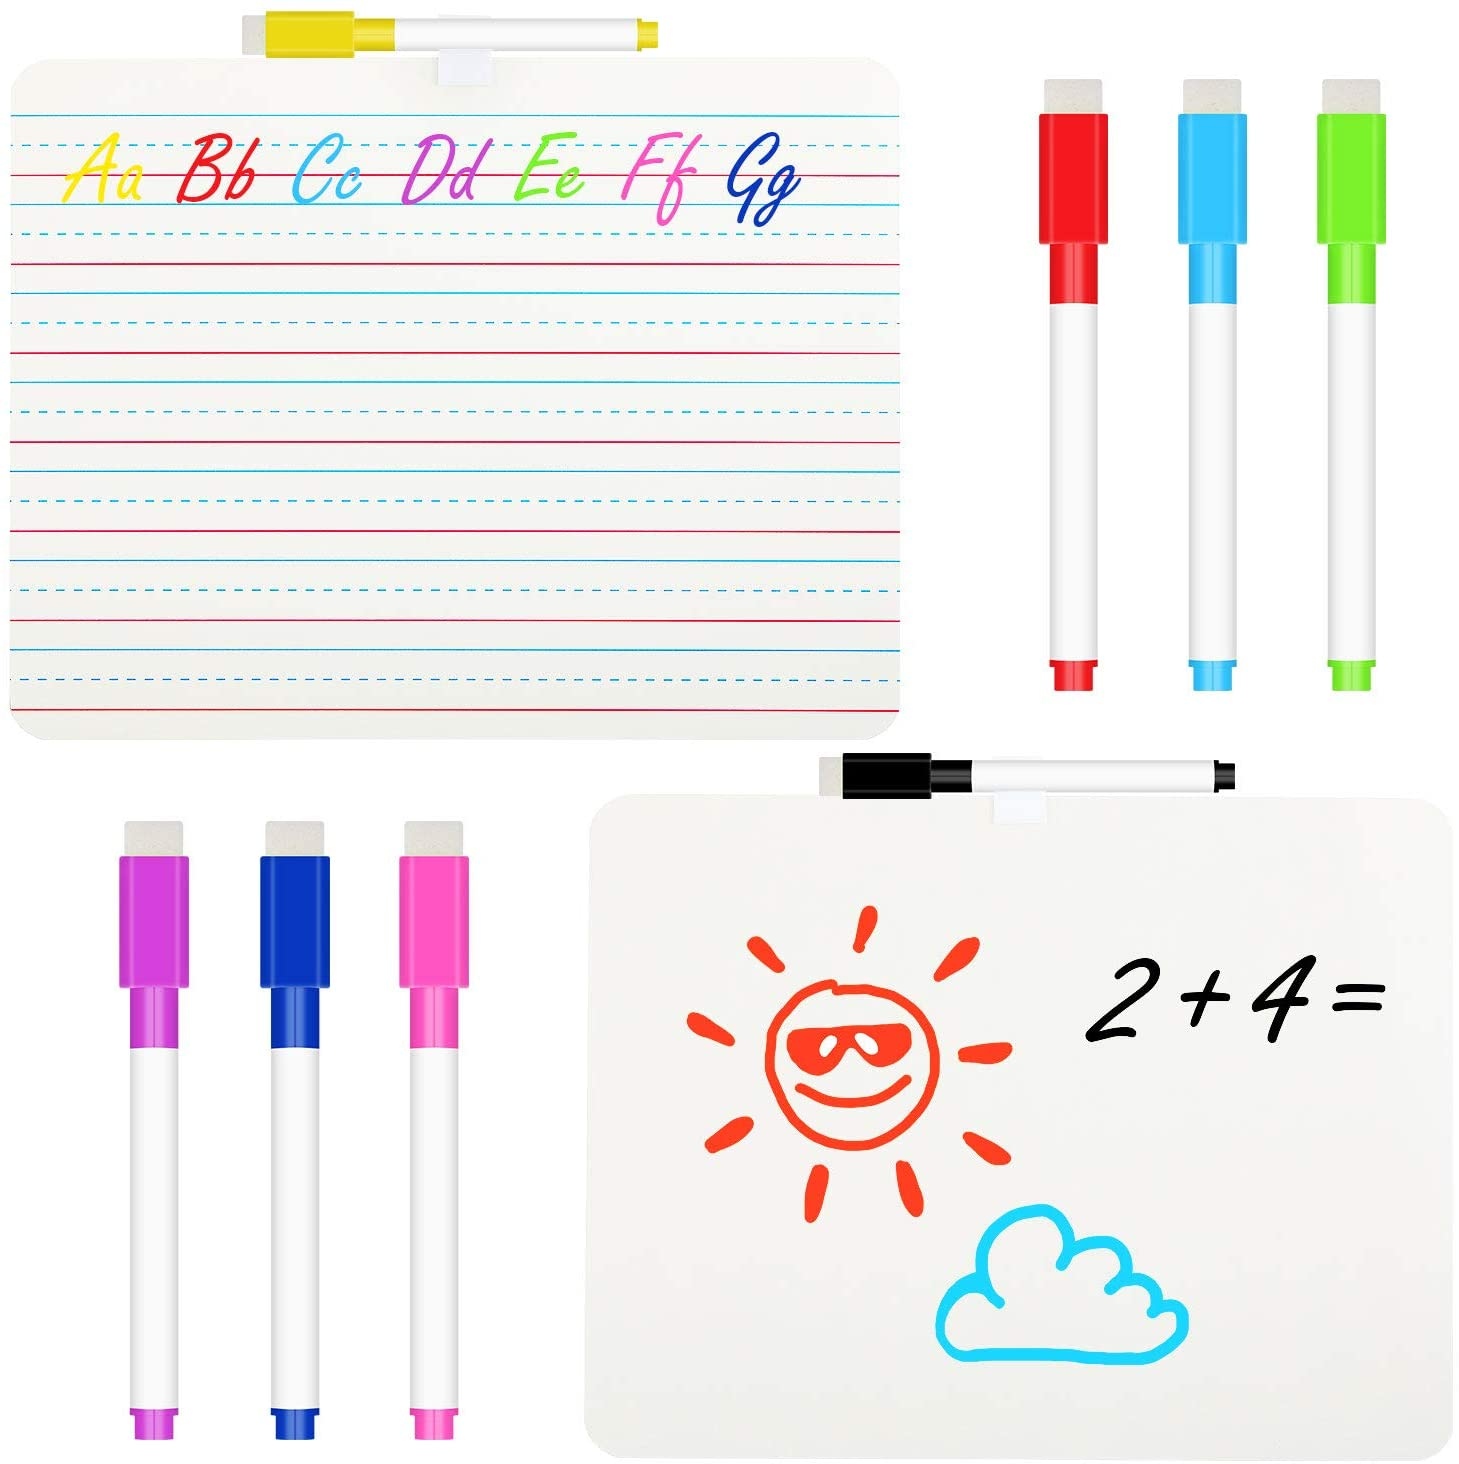 2 Pieces Ruled Lap Boards Dry Erase Boards Double Sided Dry Erase Whiteboards with 8 Pieces Color Mixed Erasable Pens for Students Teachers Classrooms Supplies and Home Studying